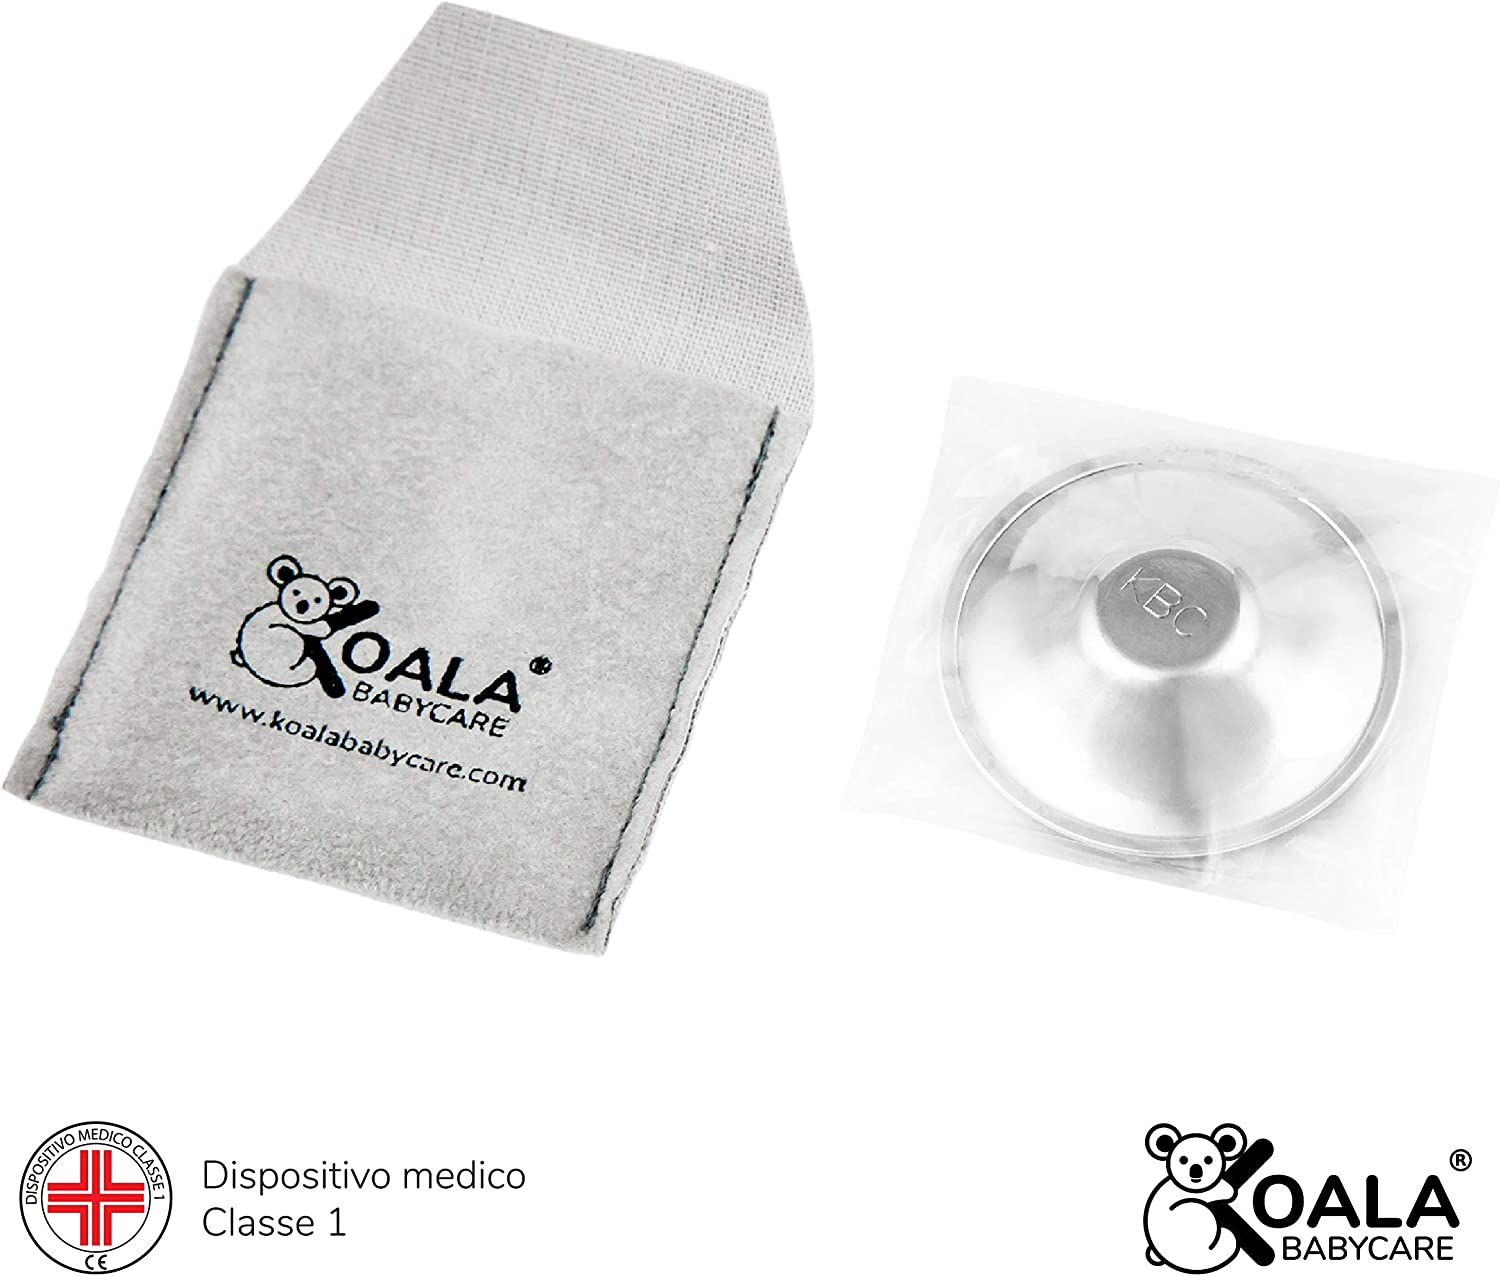 Koala Babycare Nipple Cups in 100/% Silver Medical Device Class 1 Koala Silver Cup Maxi Nickel Free for The Prevention and Treatment of Breast fissures During Breastfeeding